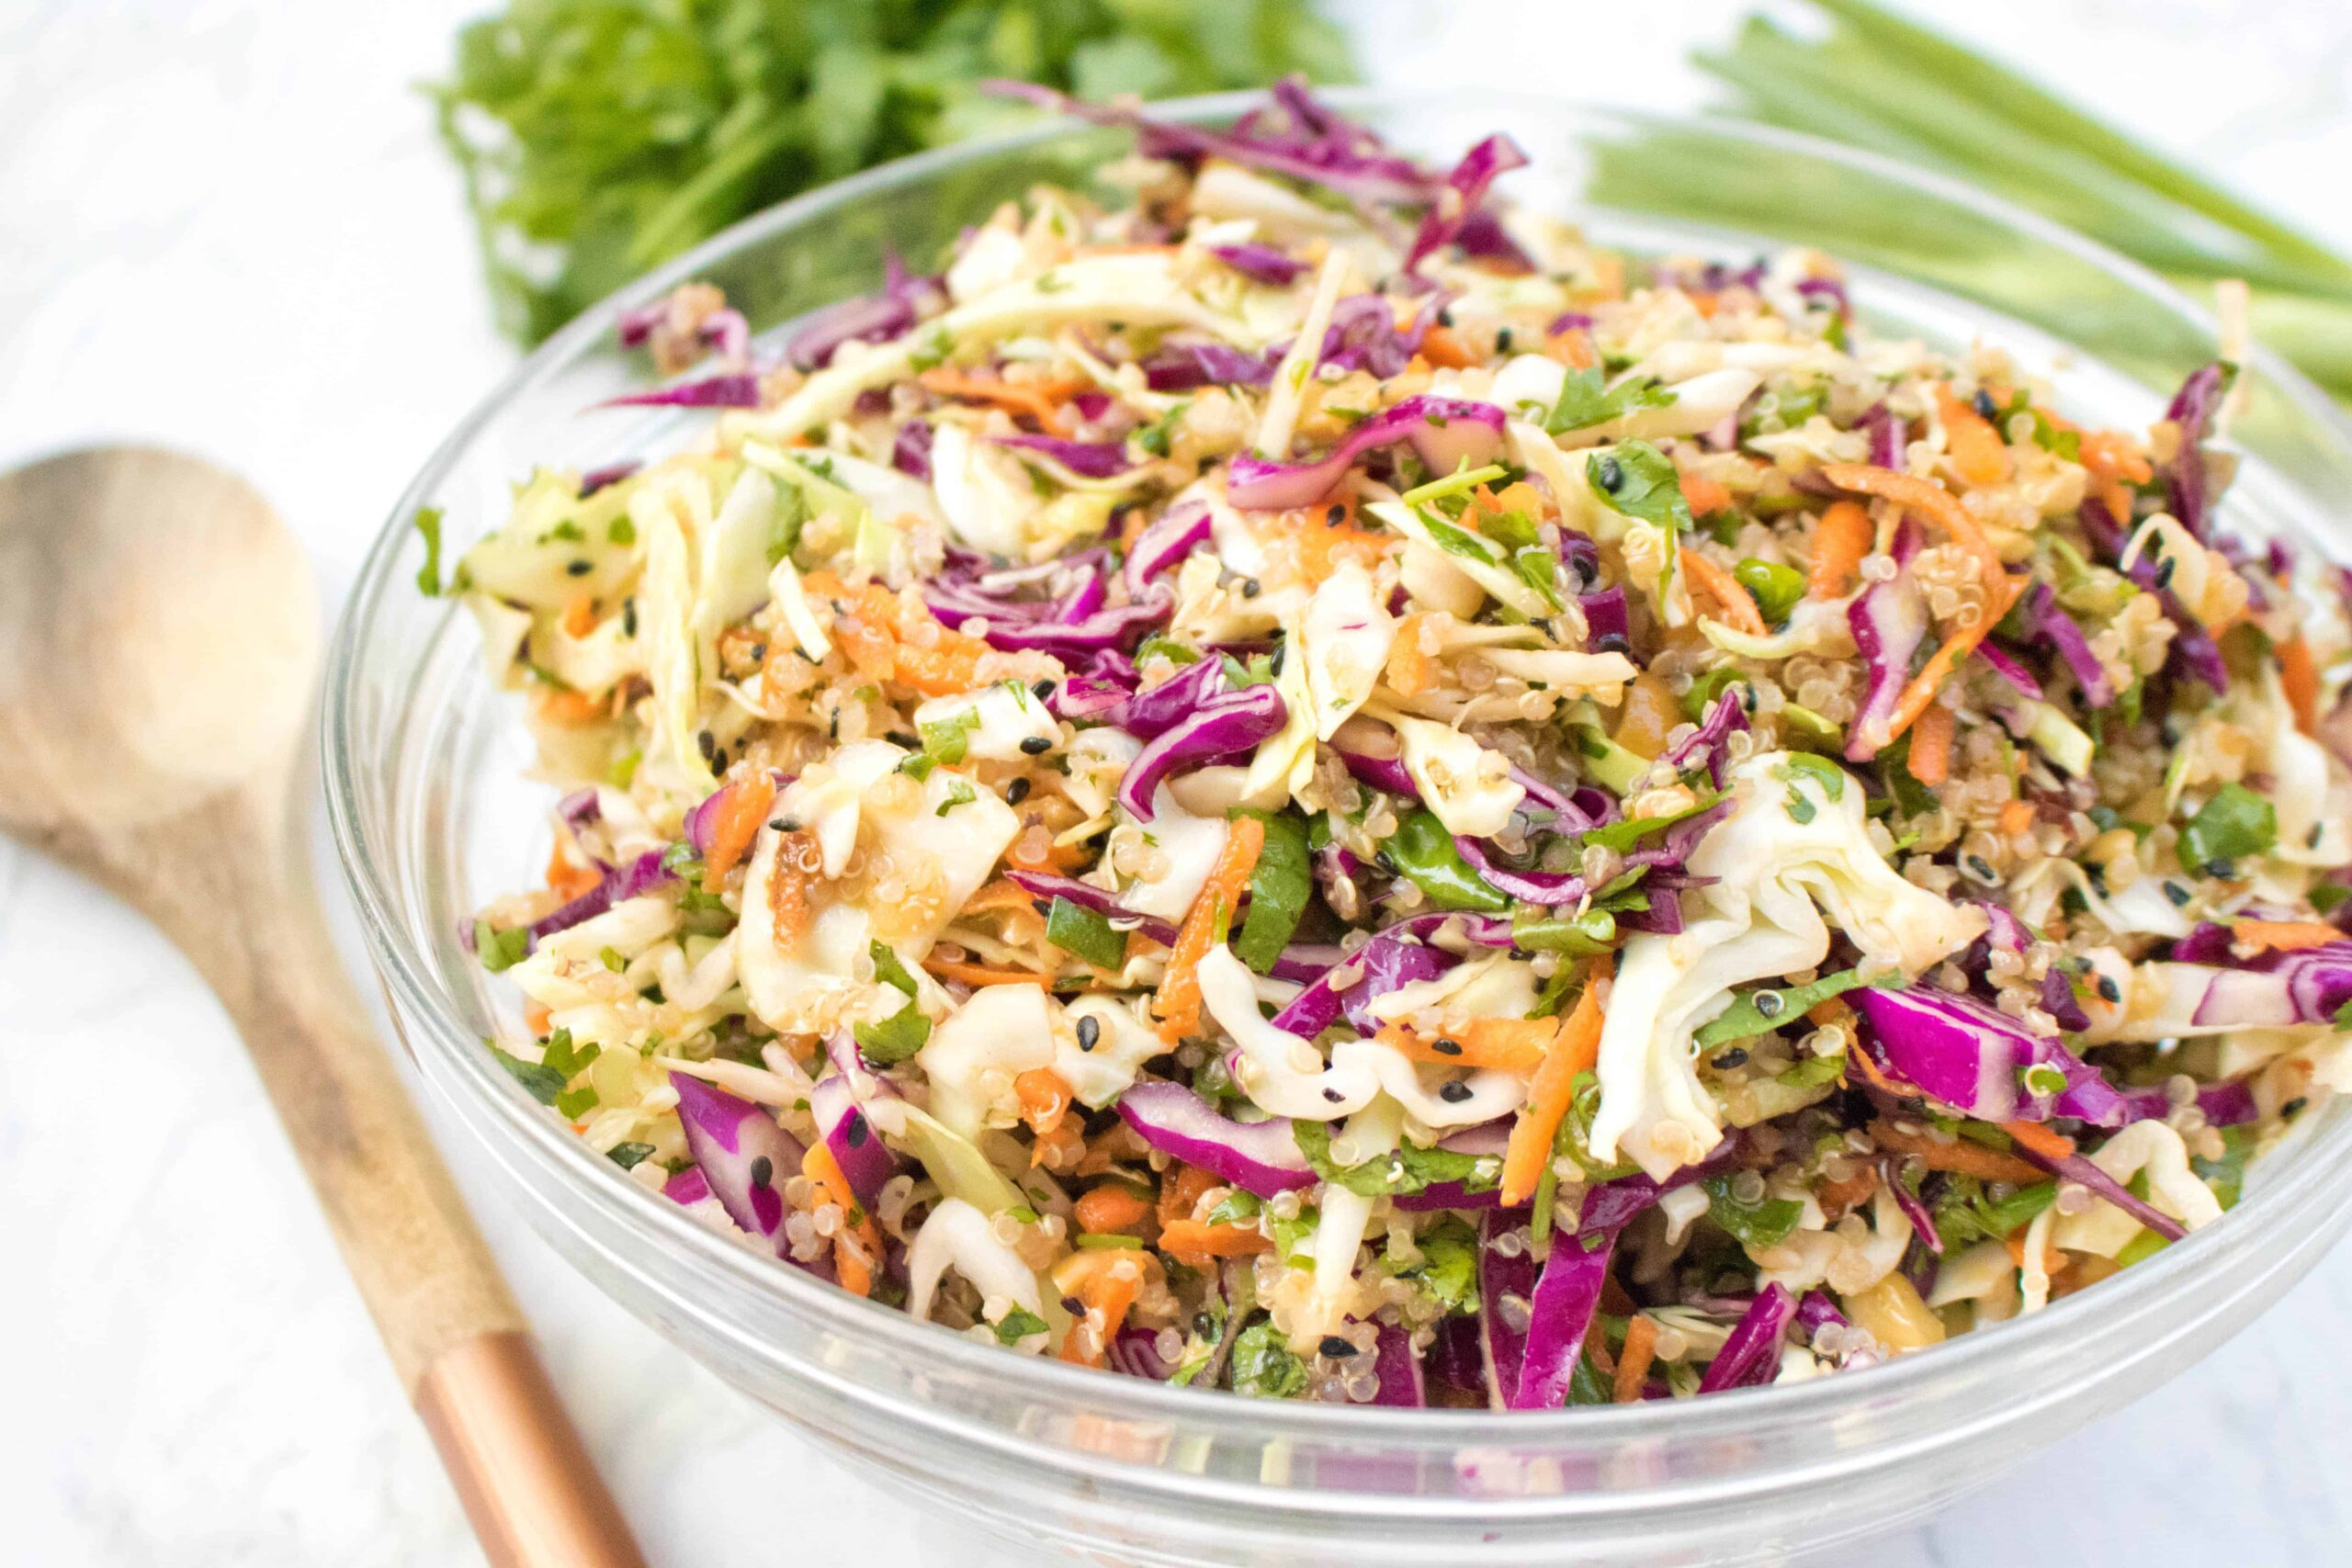 This Asian Sesame Ginger Slaw isn't your average slaw!  It's heartier due to the addition of quinoa, but also mayo free and lighter with a delicious sesame ginger dressing!